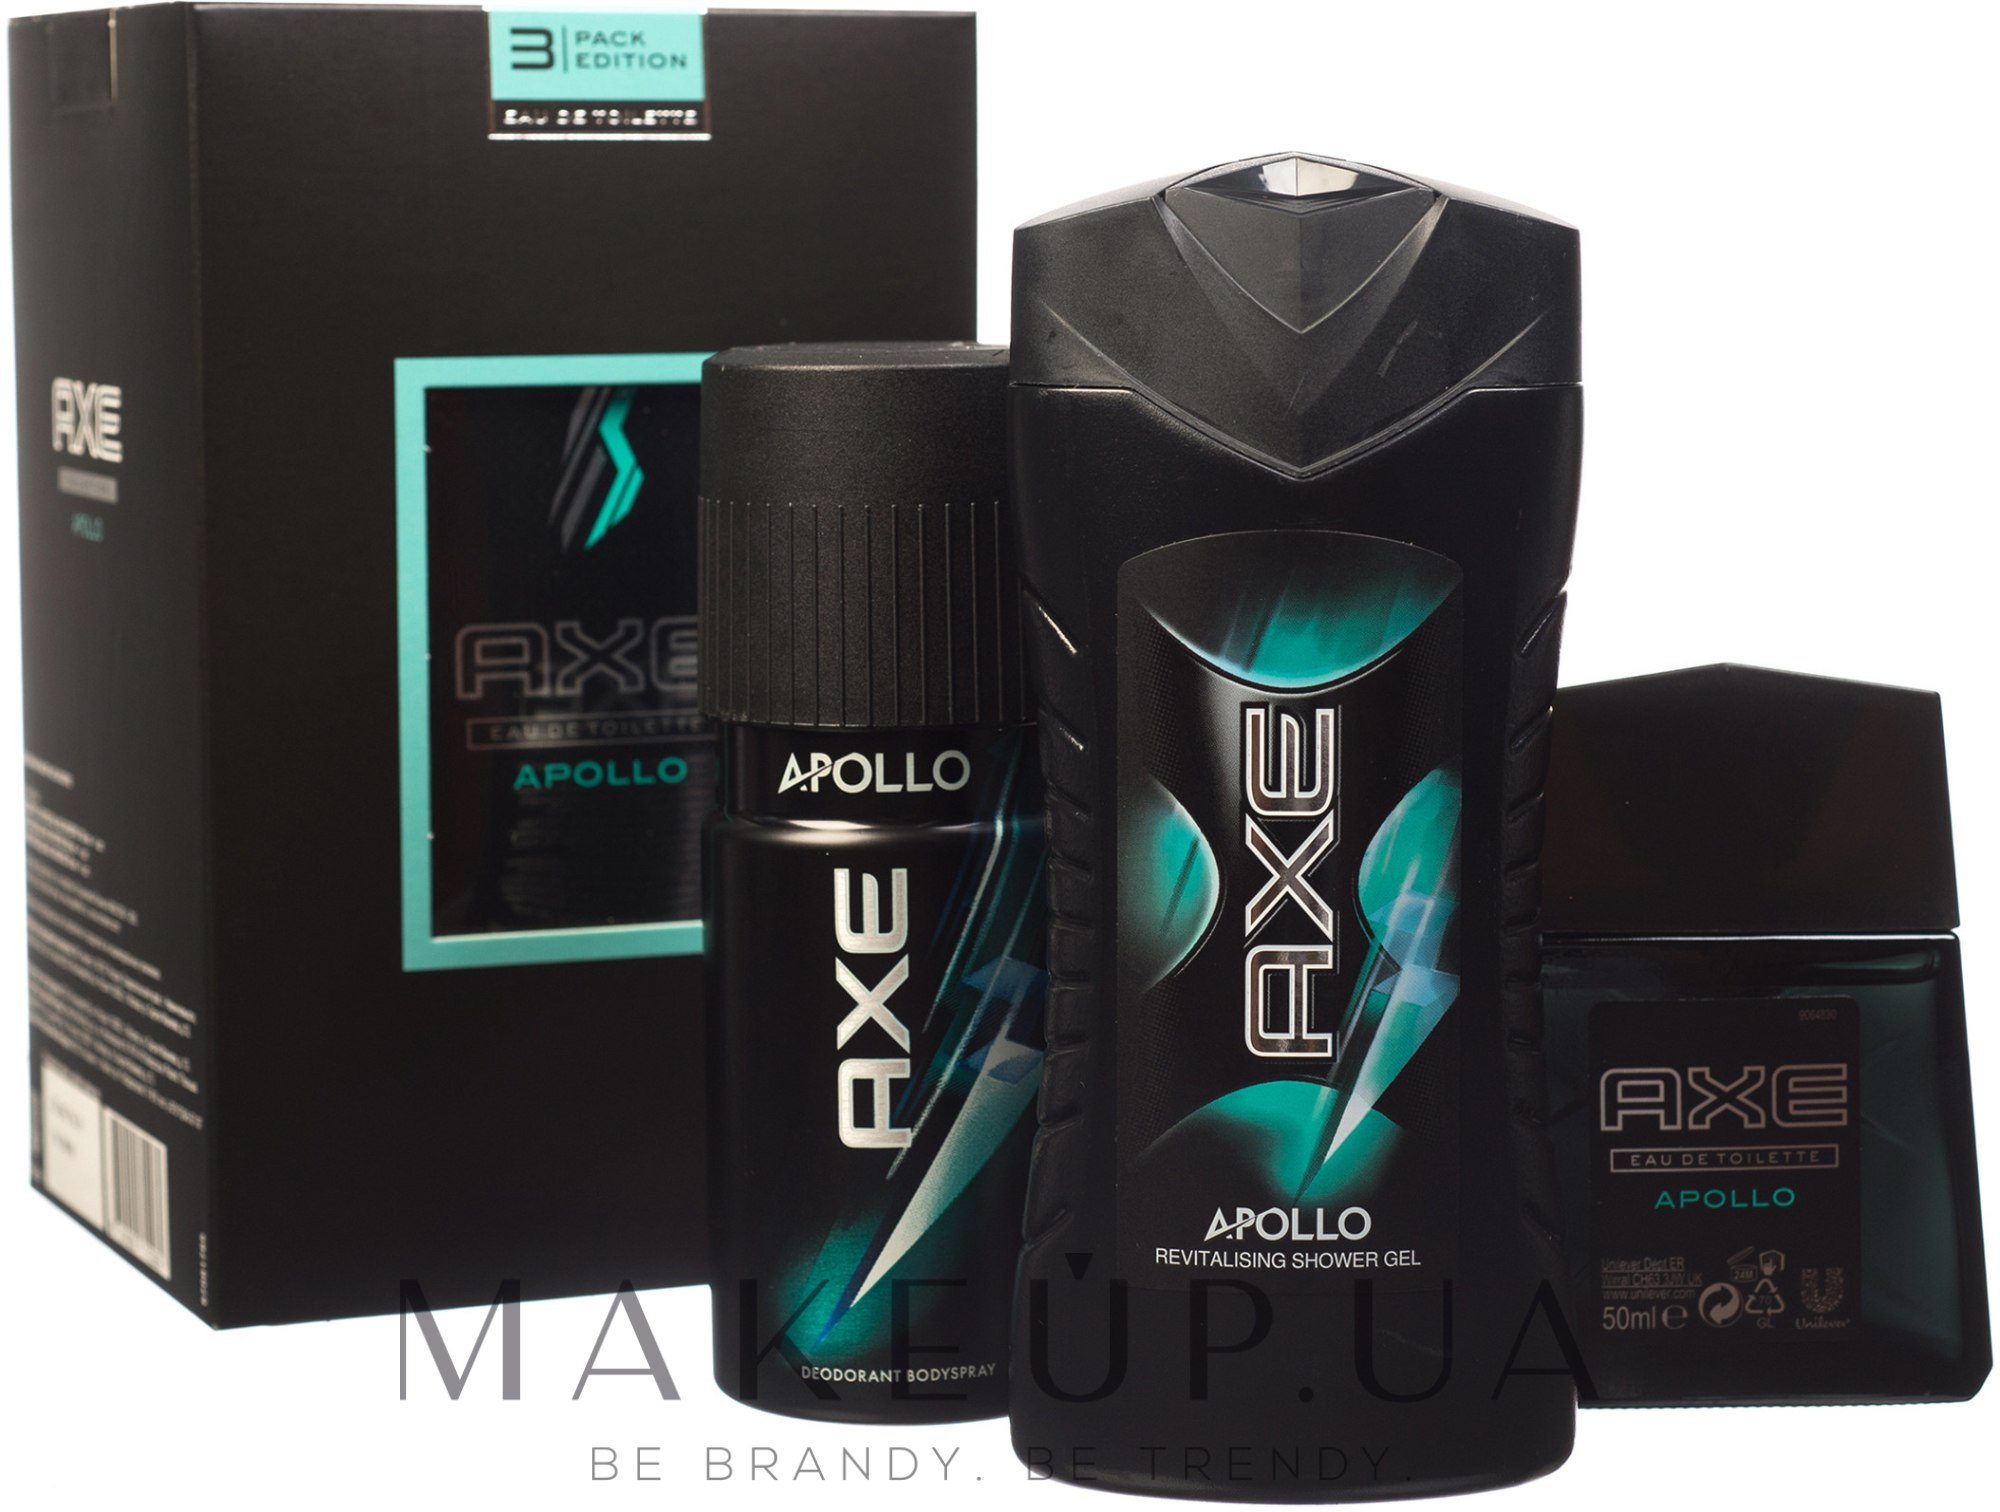 Makeup Axe Apollo 3 Pack Edition Deo Deodorant Bodyspray 150ml Twin Sh Gel 250ml Edt 50ml